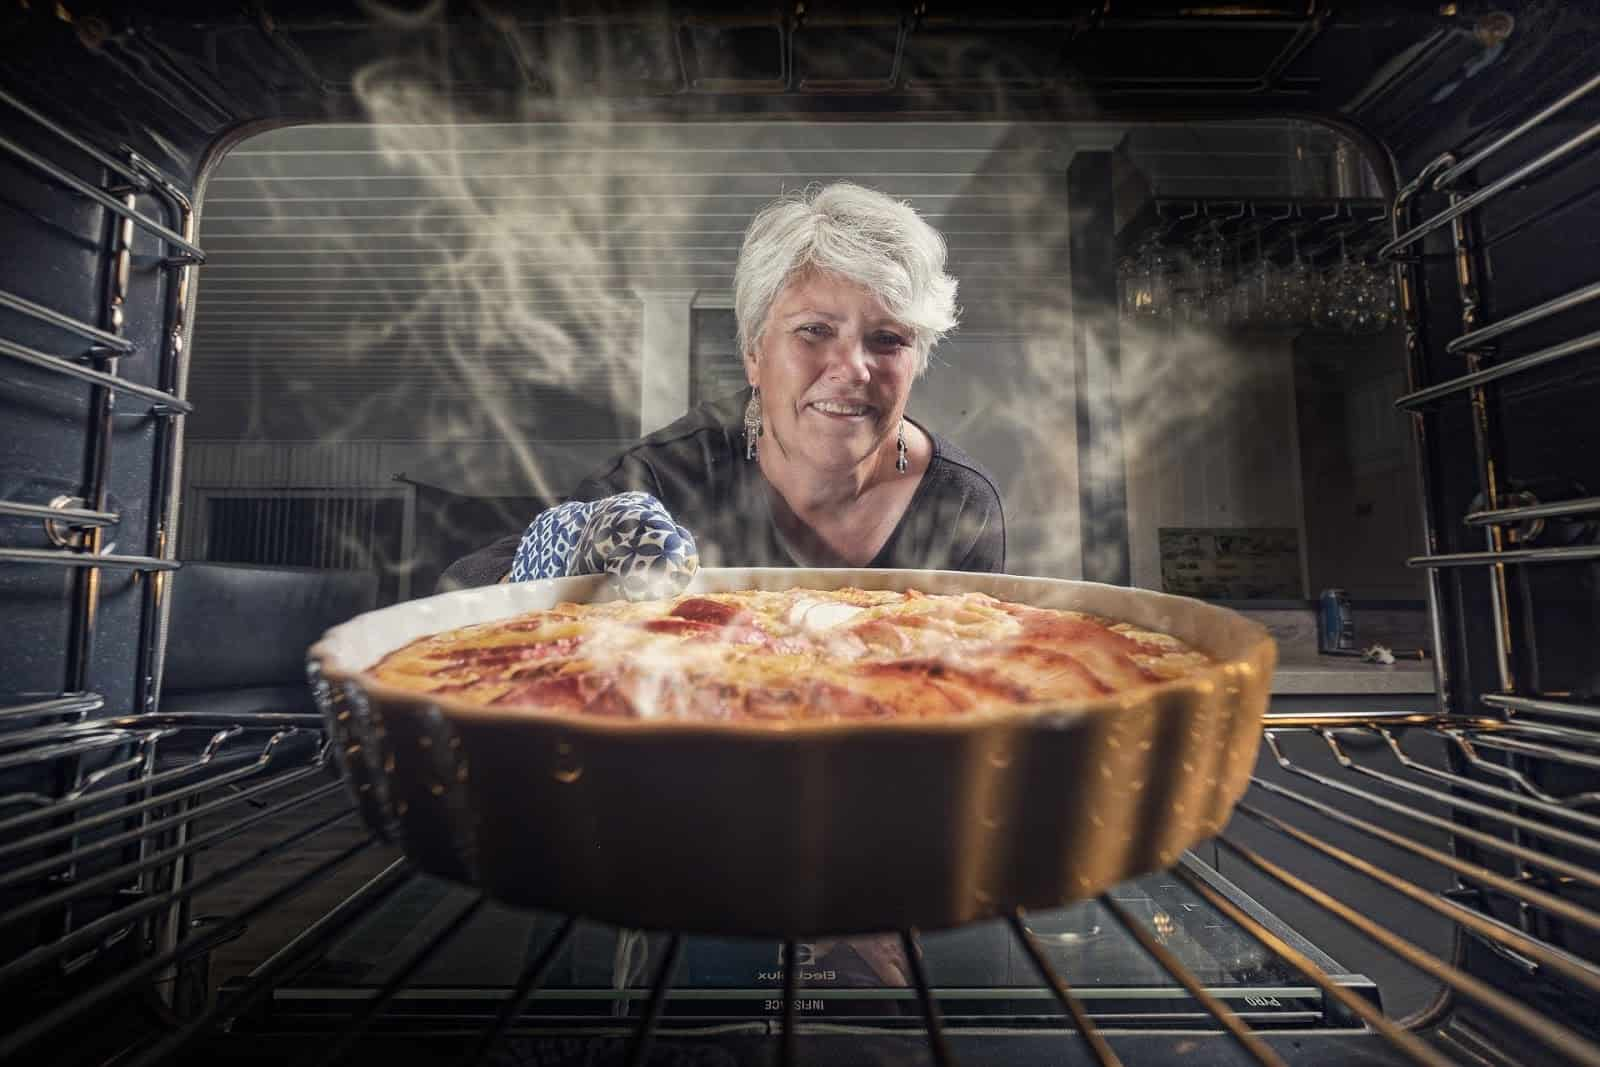 Freshly baked pie taken out of the oven by older women for her home-based cooking business